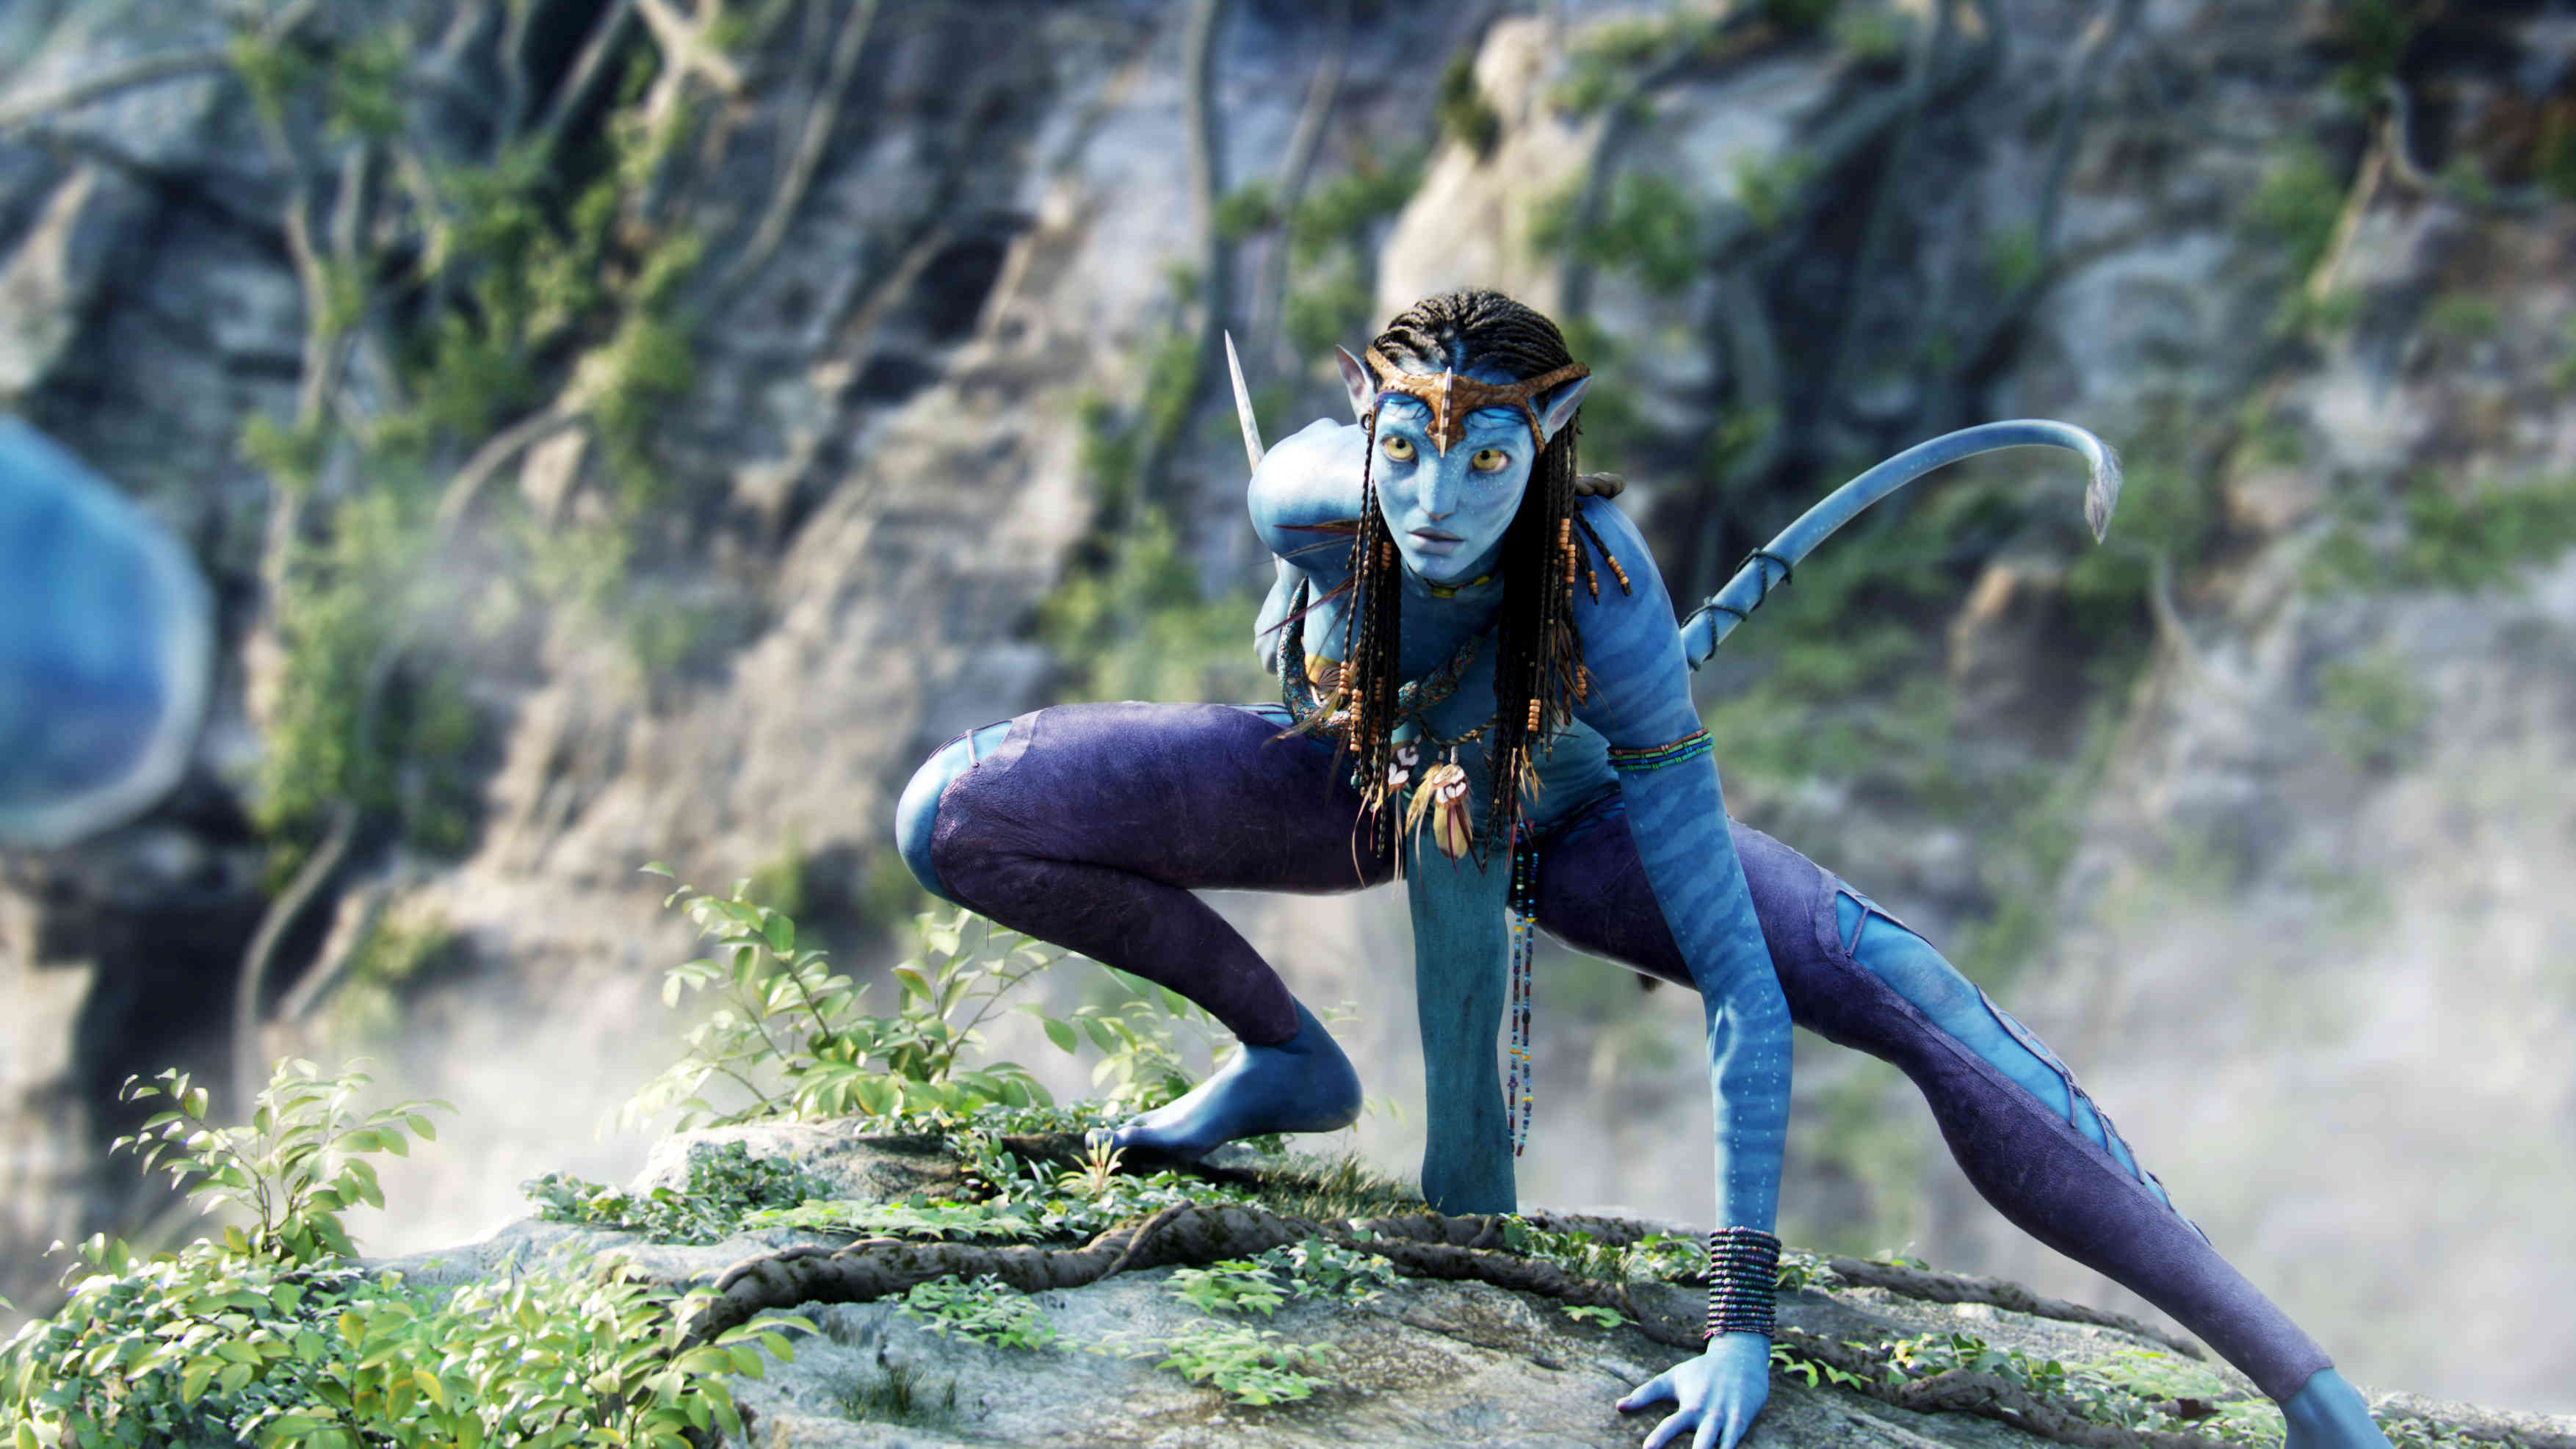 'Avatar': All Four Sequels Being Shot Simultaneously